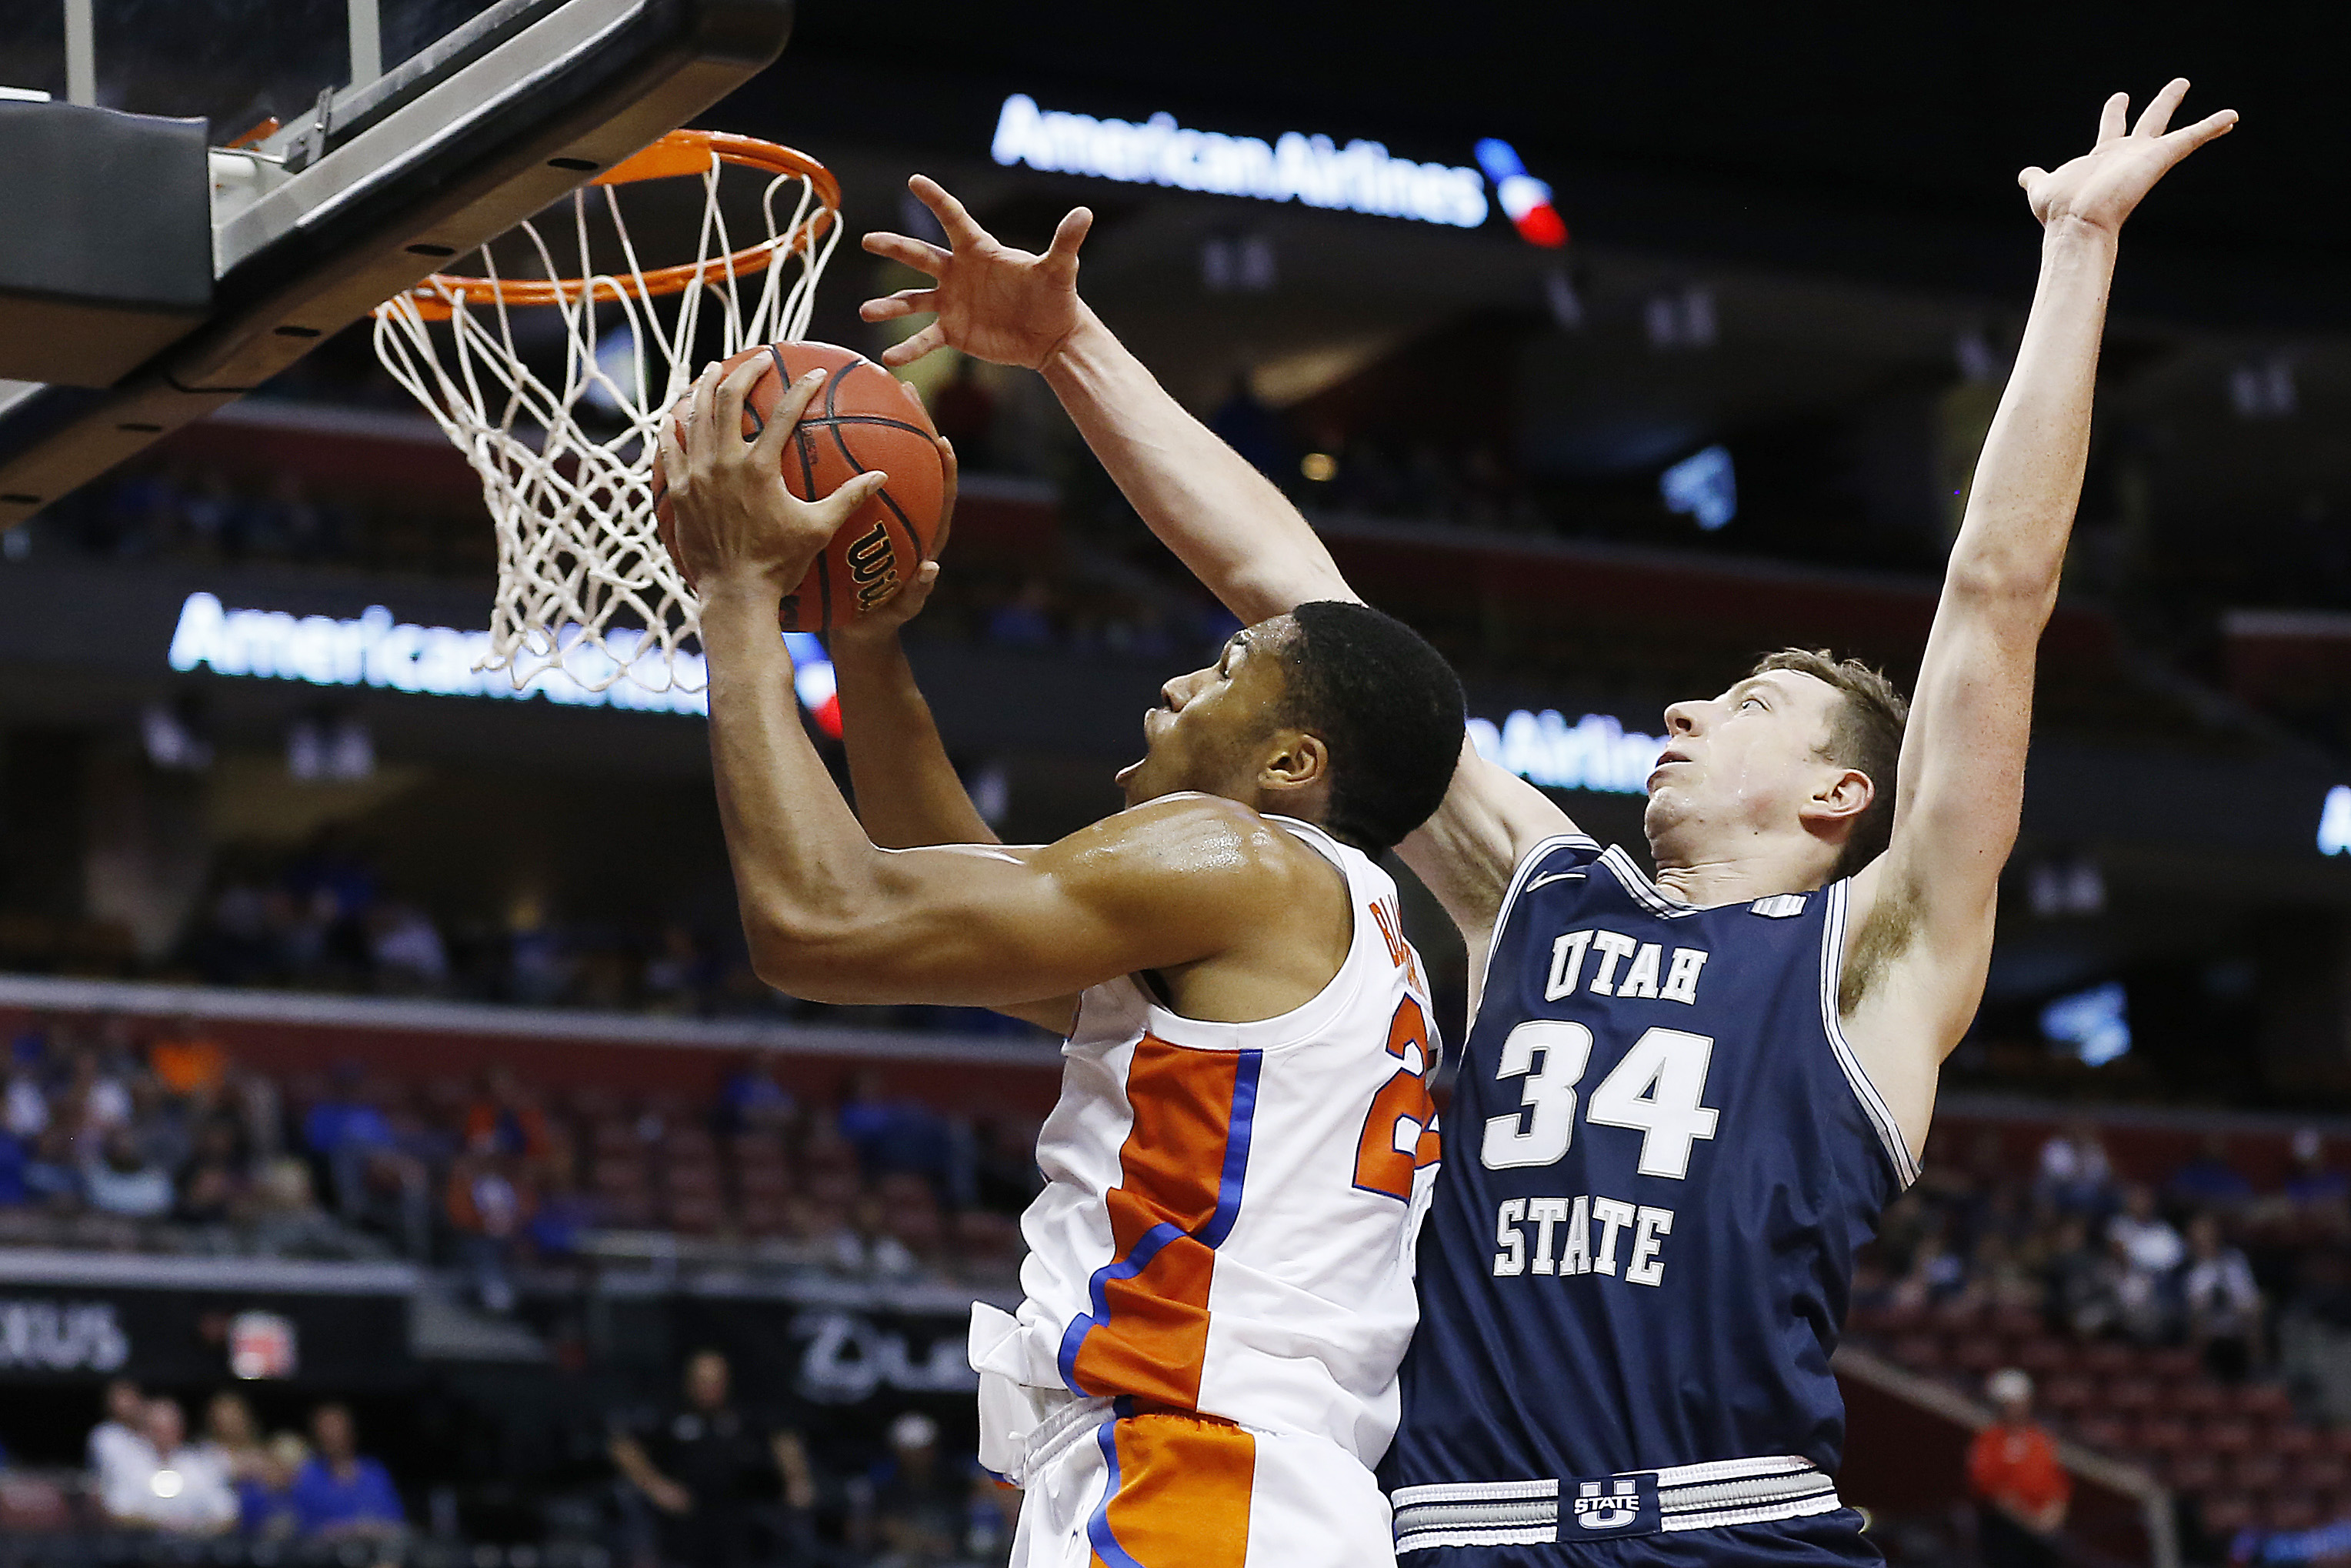 Kerry Blackshear Jr. of the Florida Gators shoots against Justin Bean of the Utah State Aggies during the second half of the Orange Bowl Basketball Classic at BB&T Center on December 21, 2019 in Sunrise, Florida.